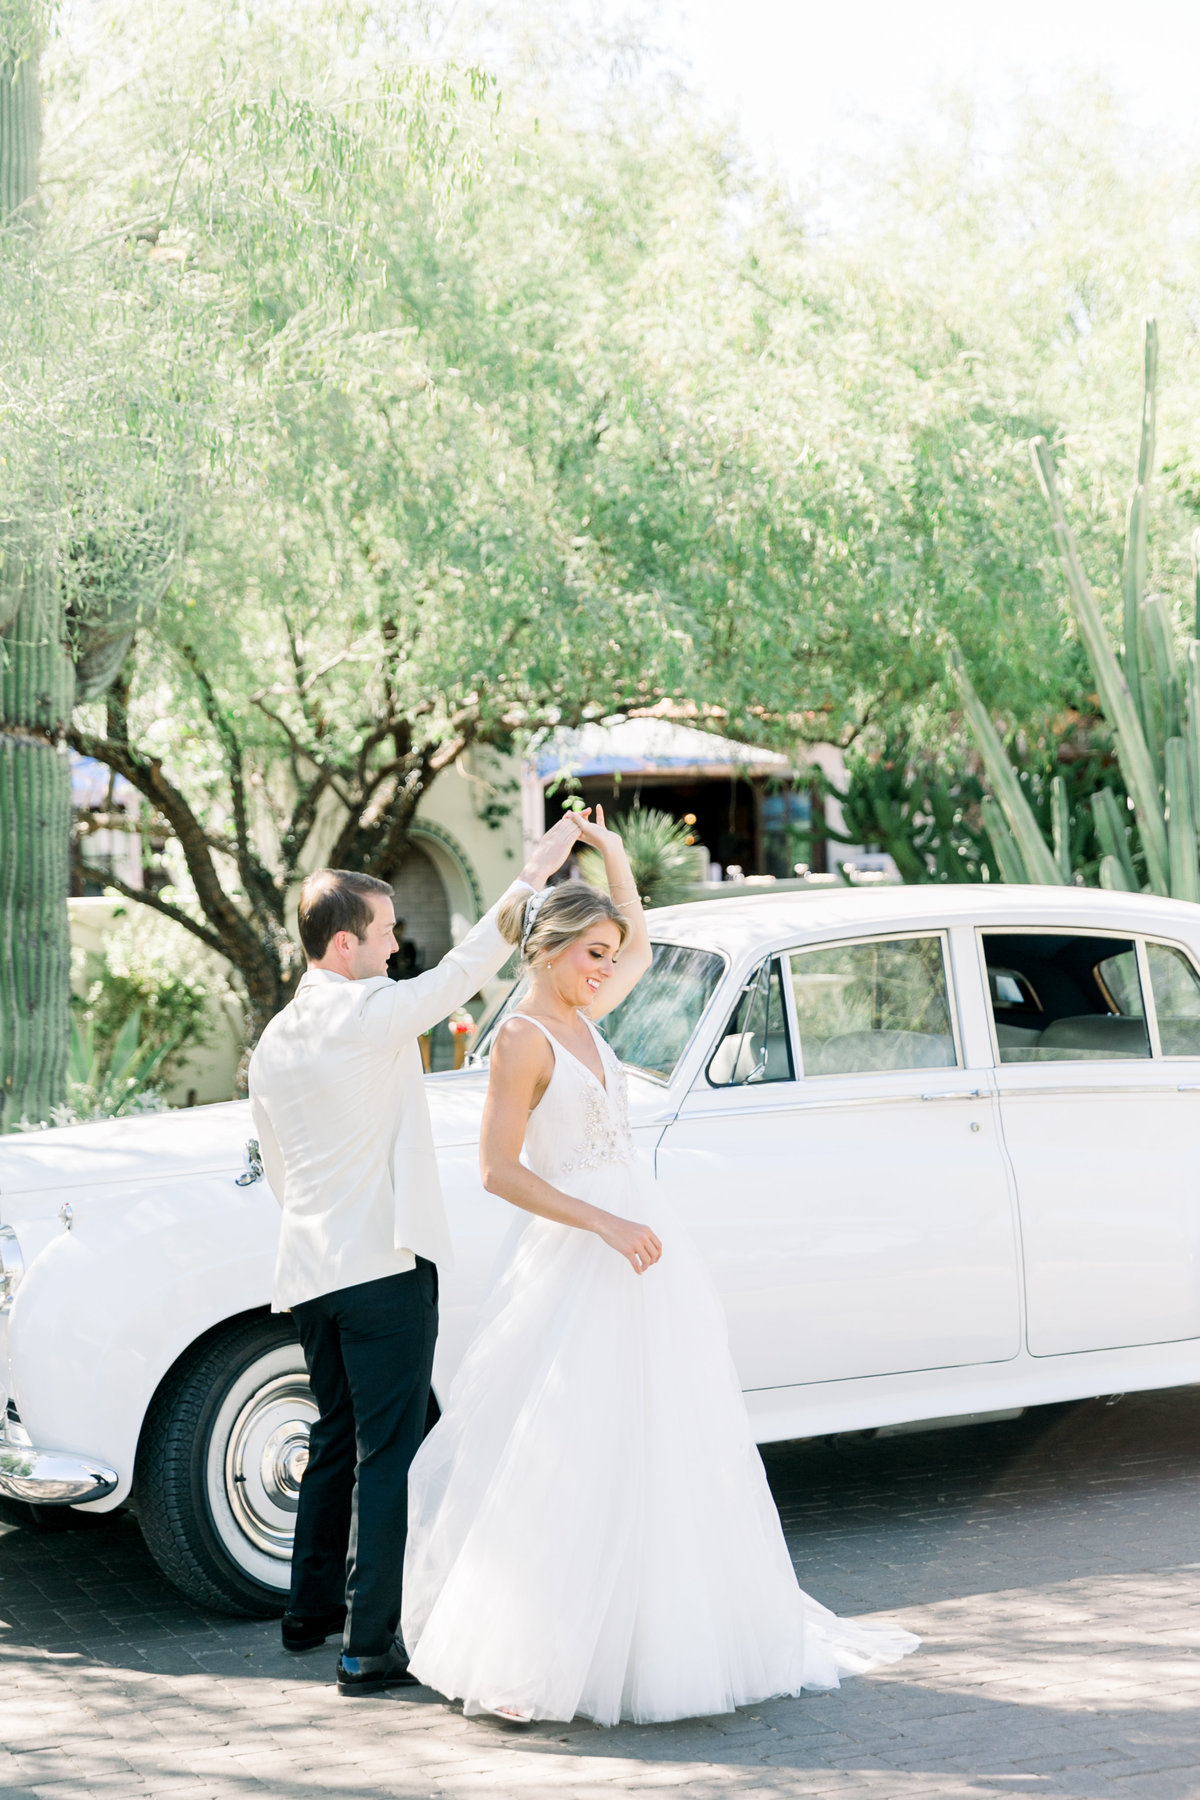 Karlie Colleen Photography - El Chorro Arizona Desert Wedding - Kylie & Doug-308